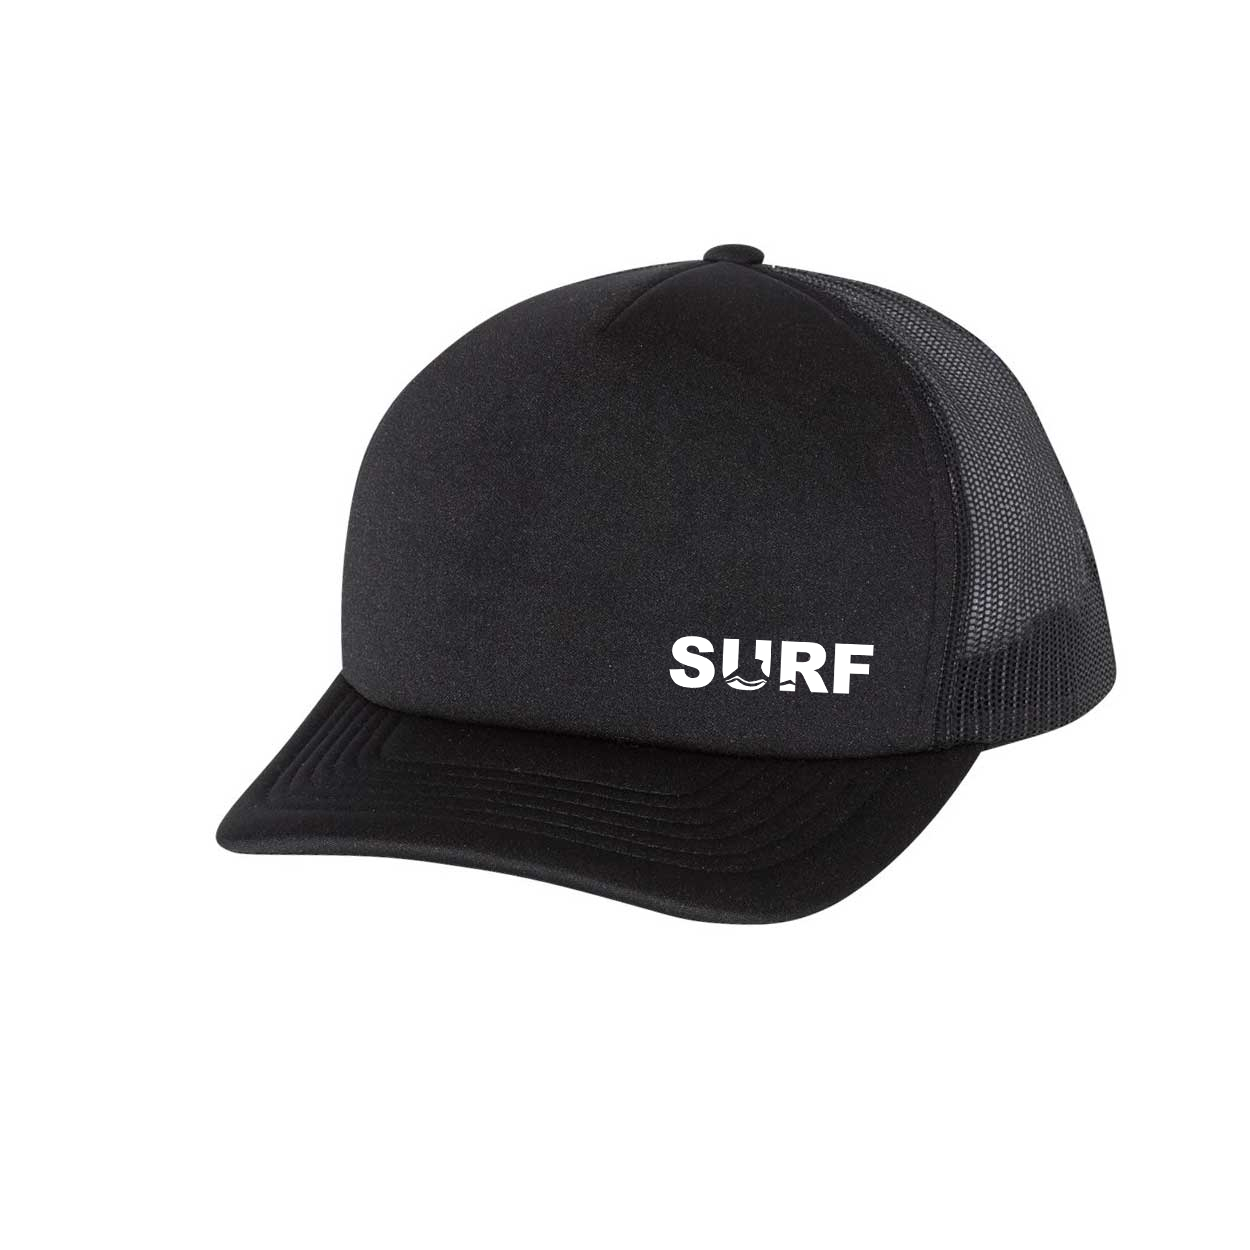 Surf Wave Logo Night Out Premium Foam Trucker Snapback Hat Black (White Logo)